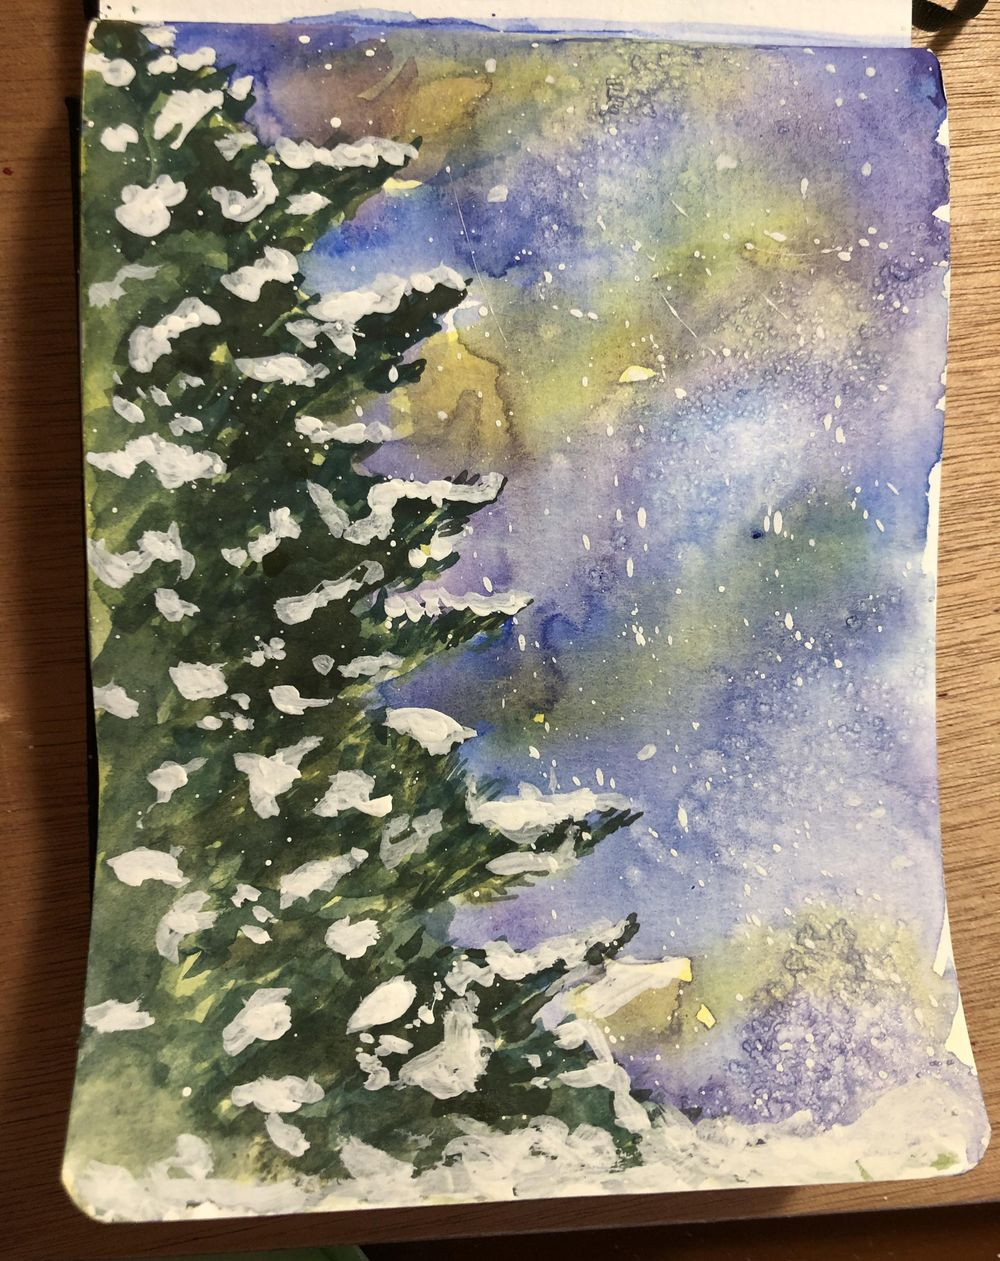 Count down to Christmas - image 1 - student project